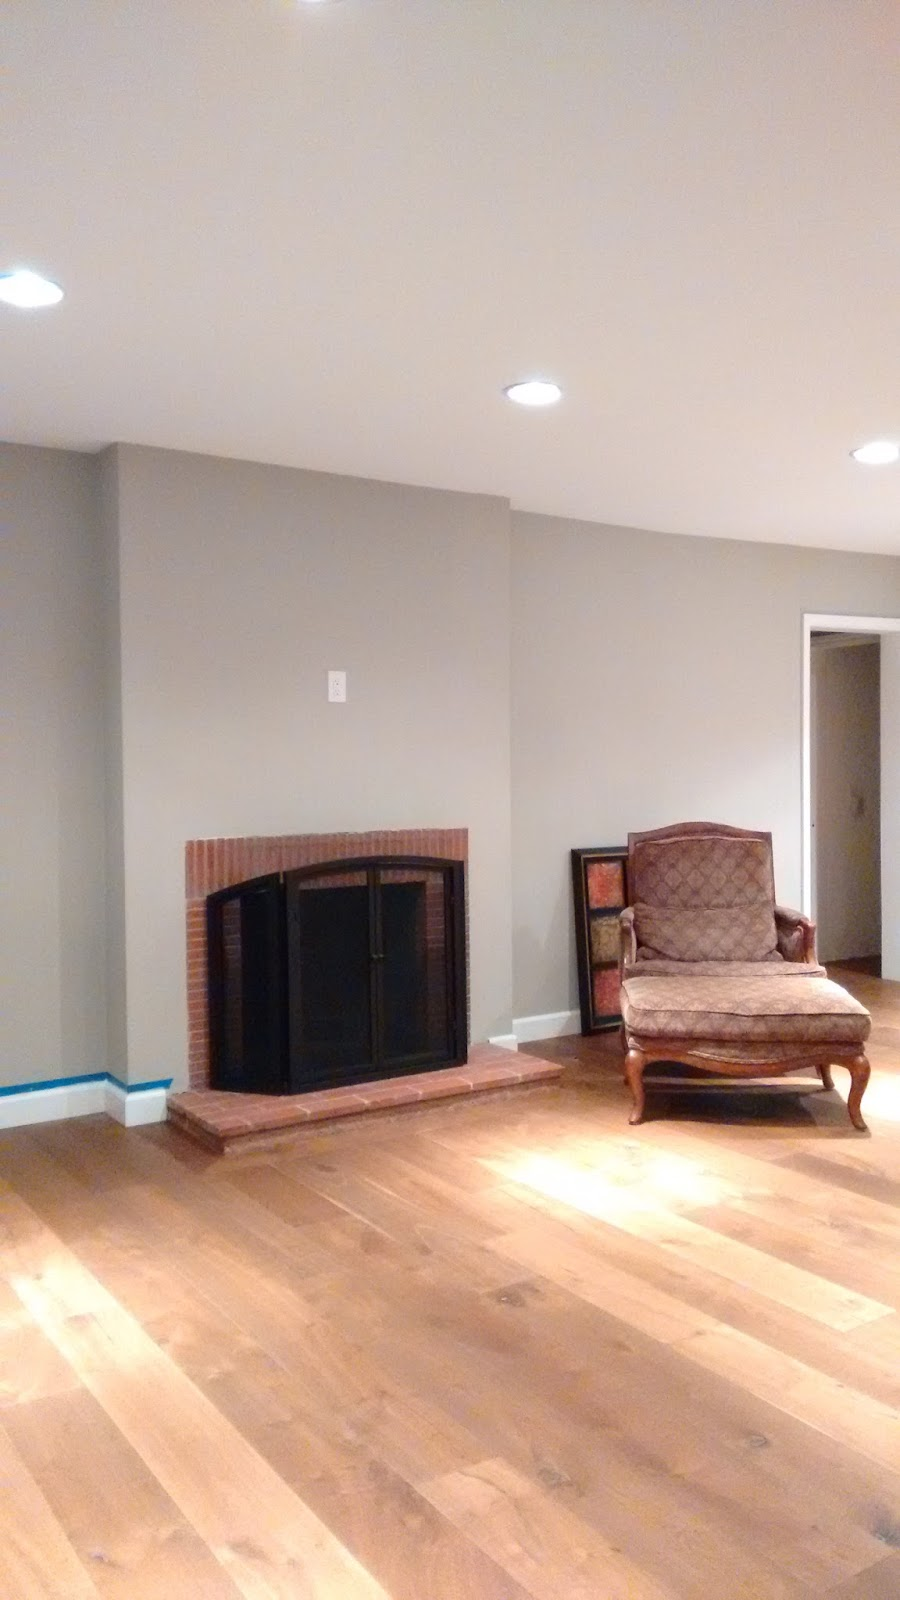 hardwood floors fireplace makeover DIY project home improvement renovation remodel